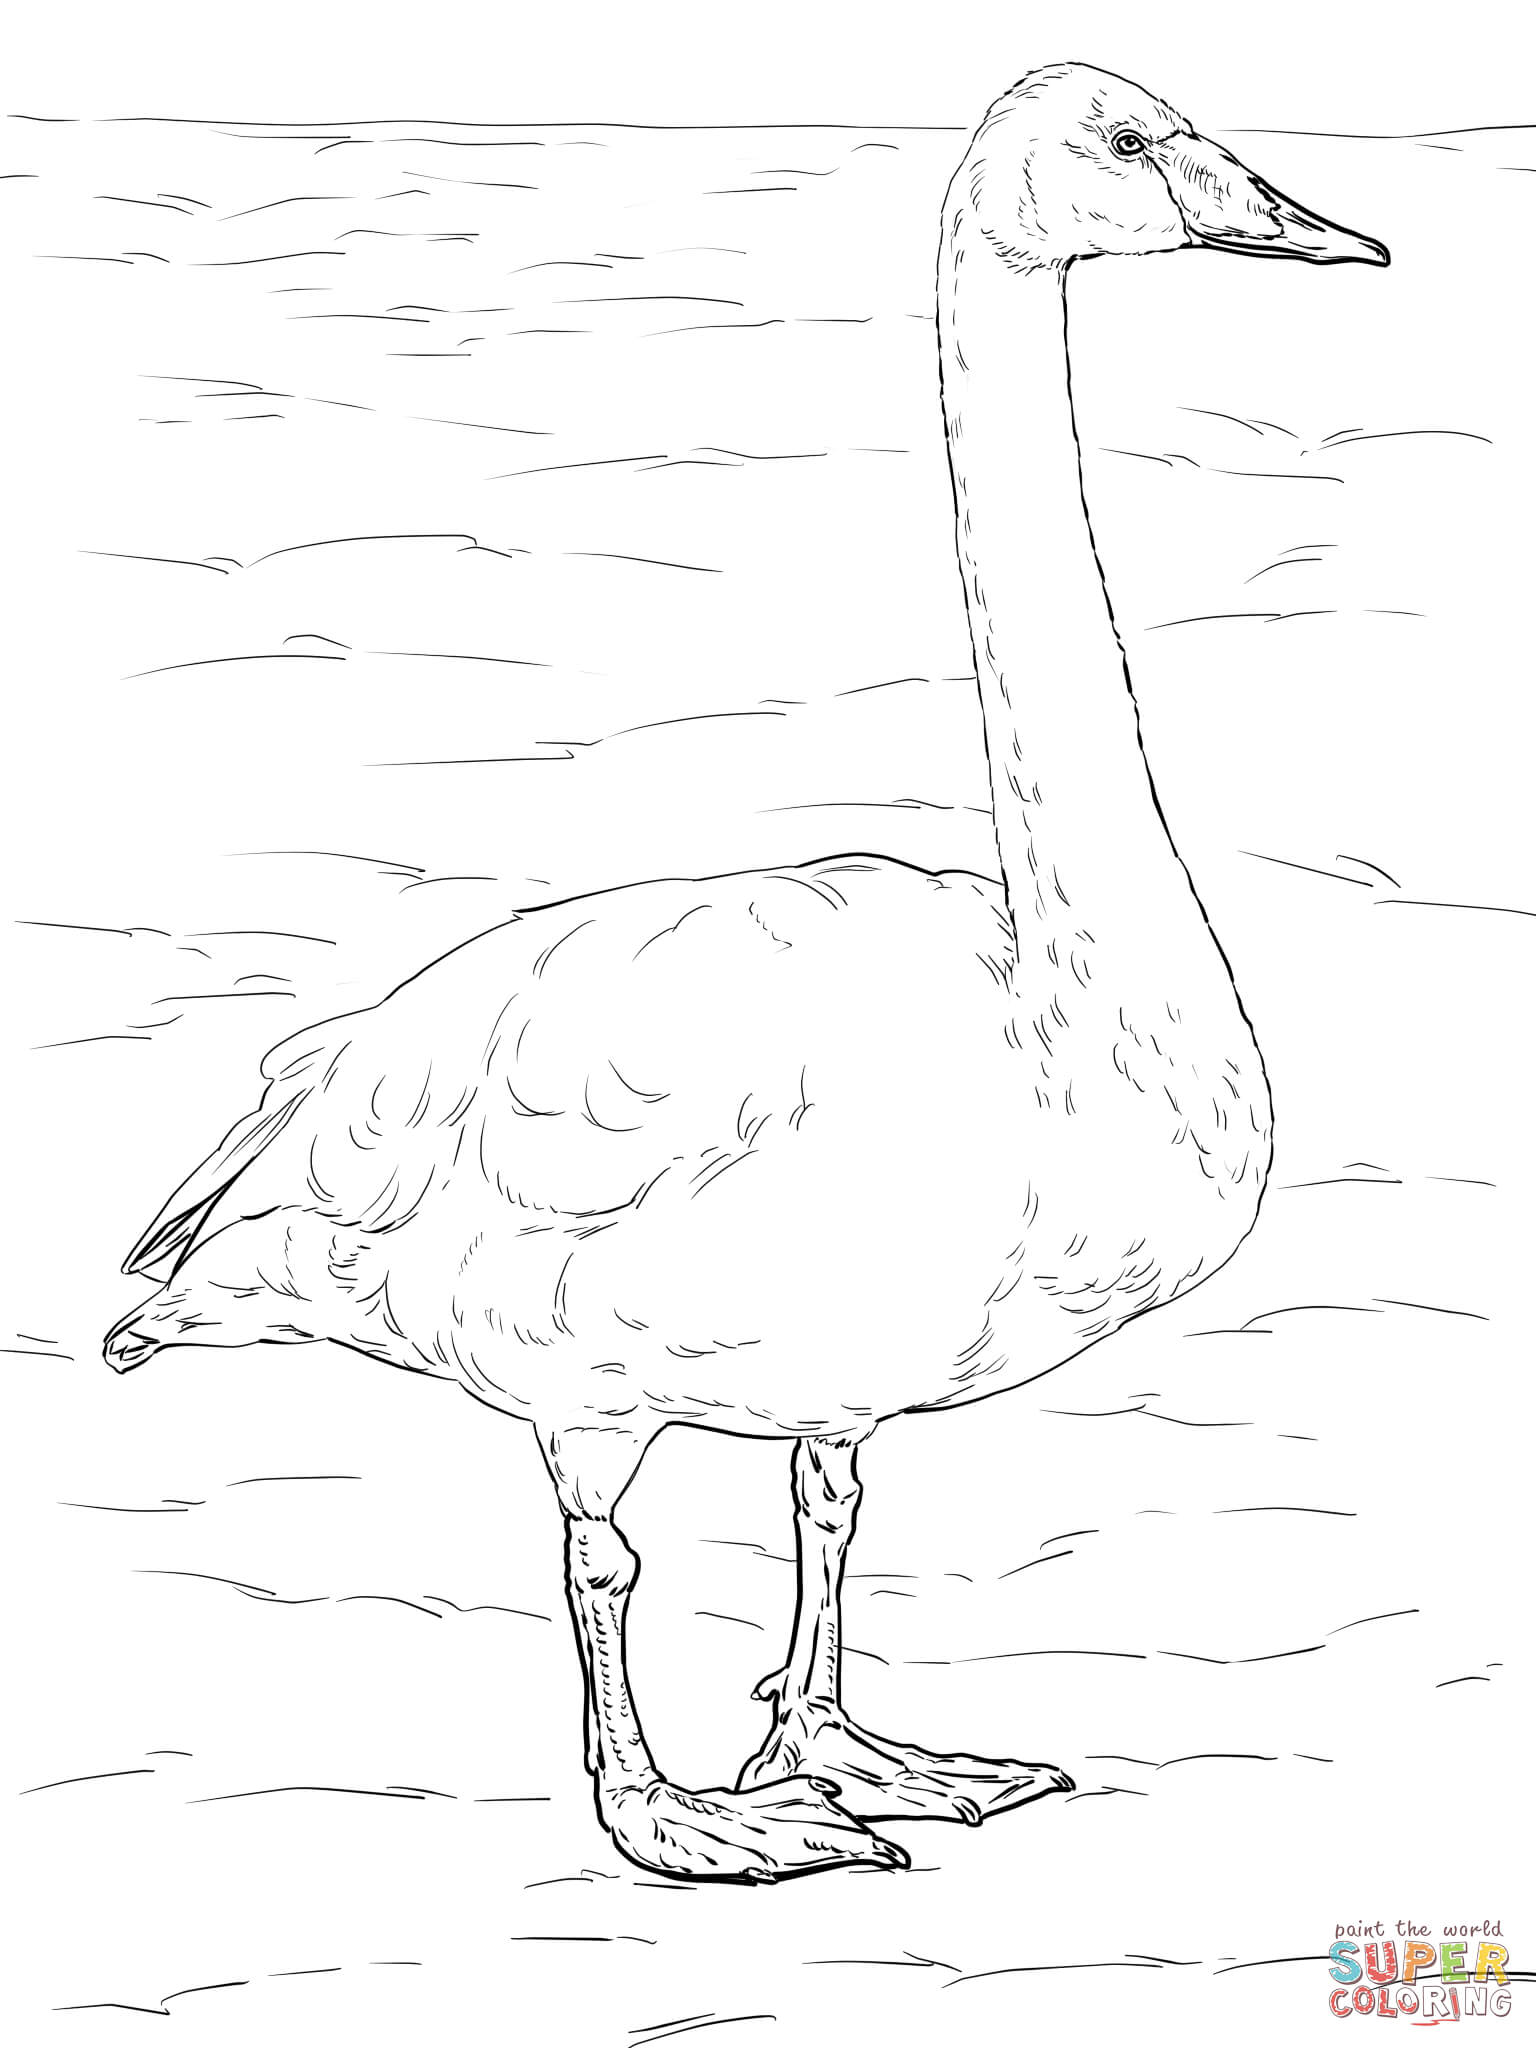 coloring pages for tundra - photo#17